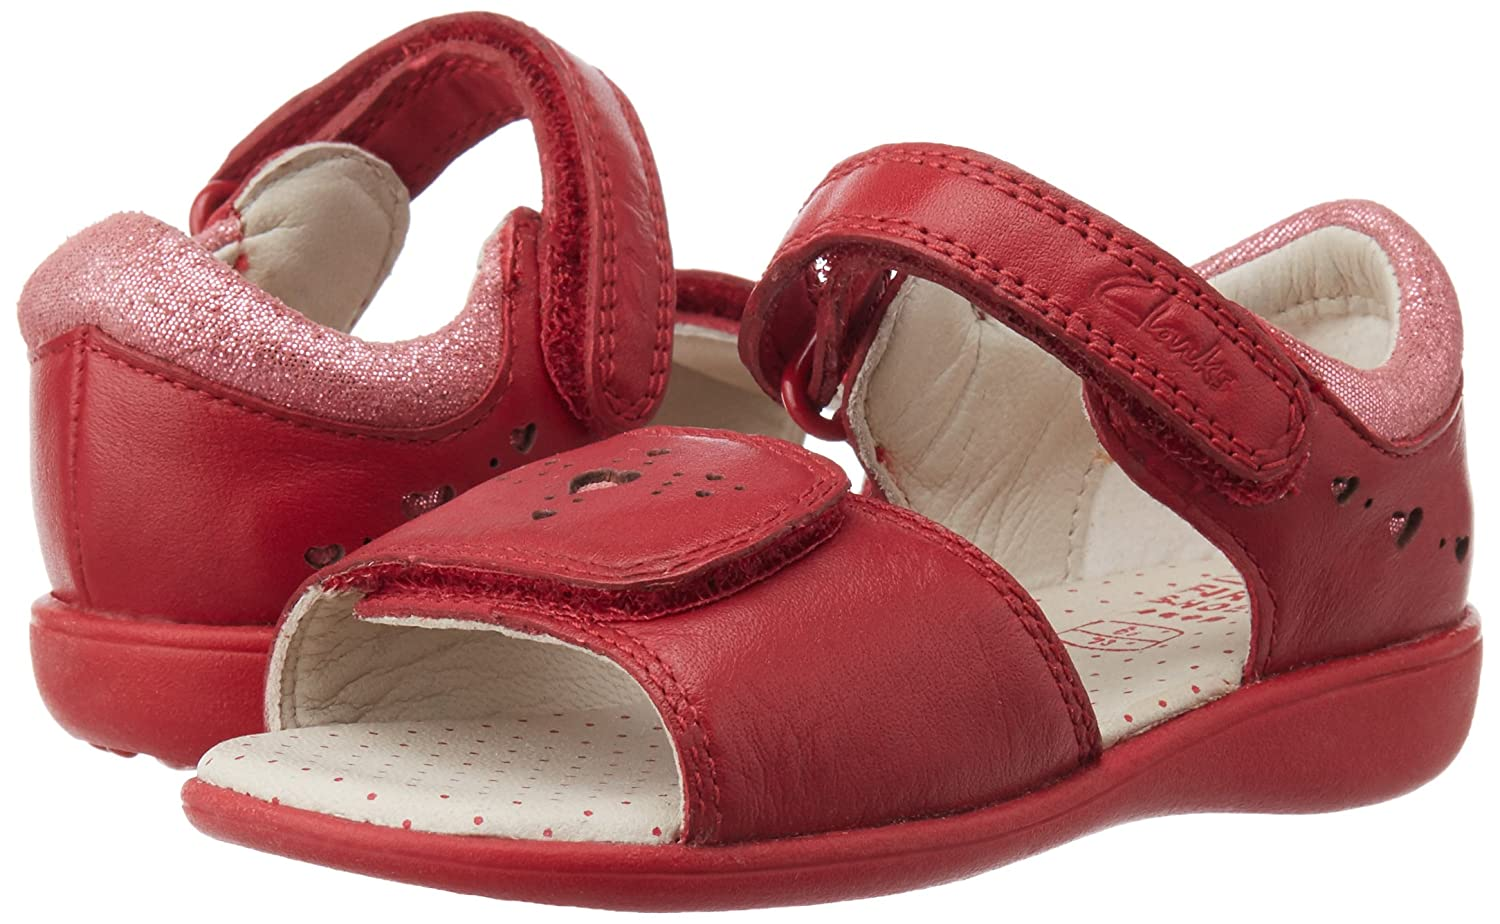 eb1b3e303be Clarks Girl s Hazy Star FST Leather First Walking Sandals  Amazon.in  Shoes    Handbags